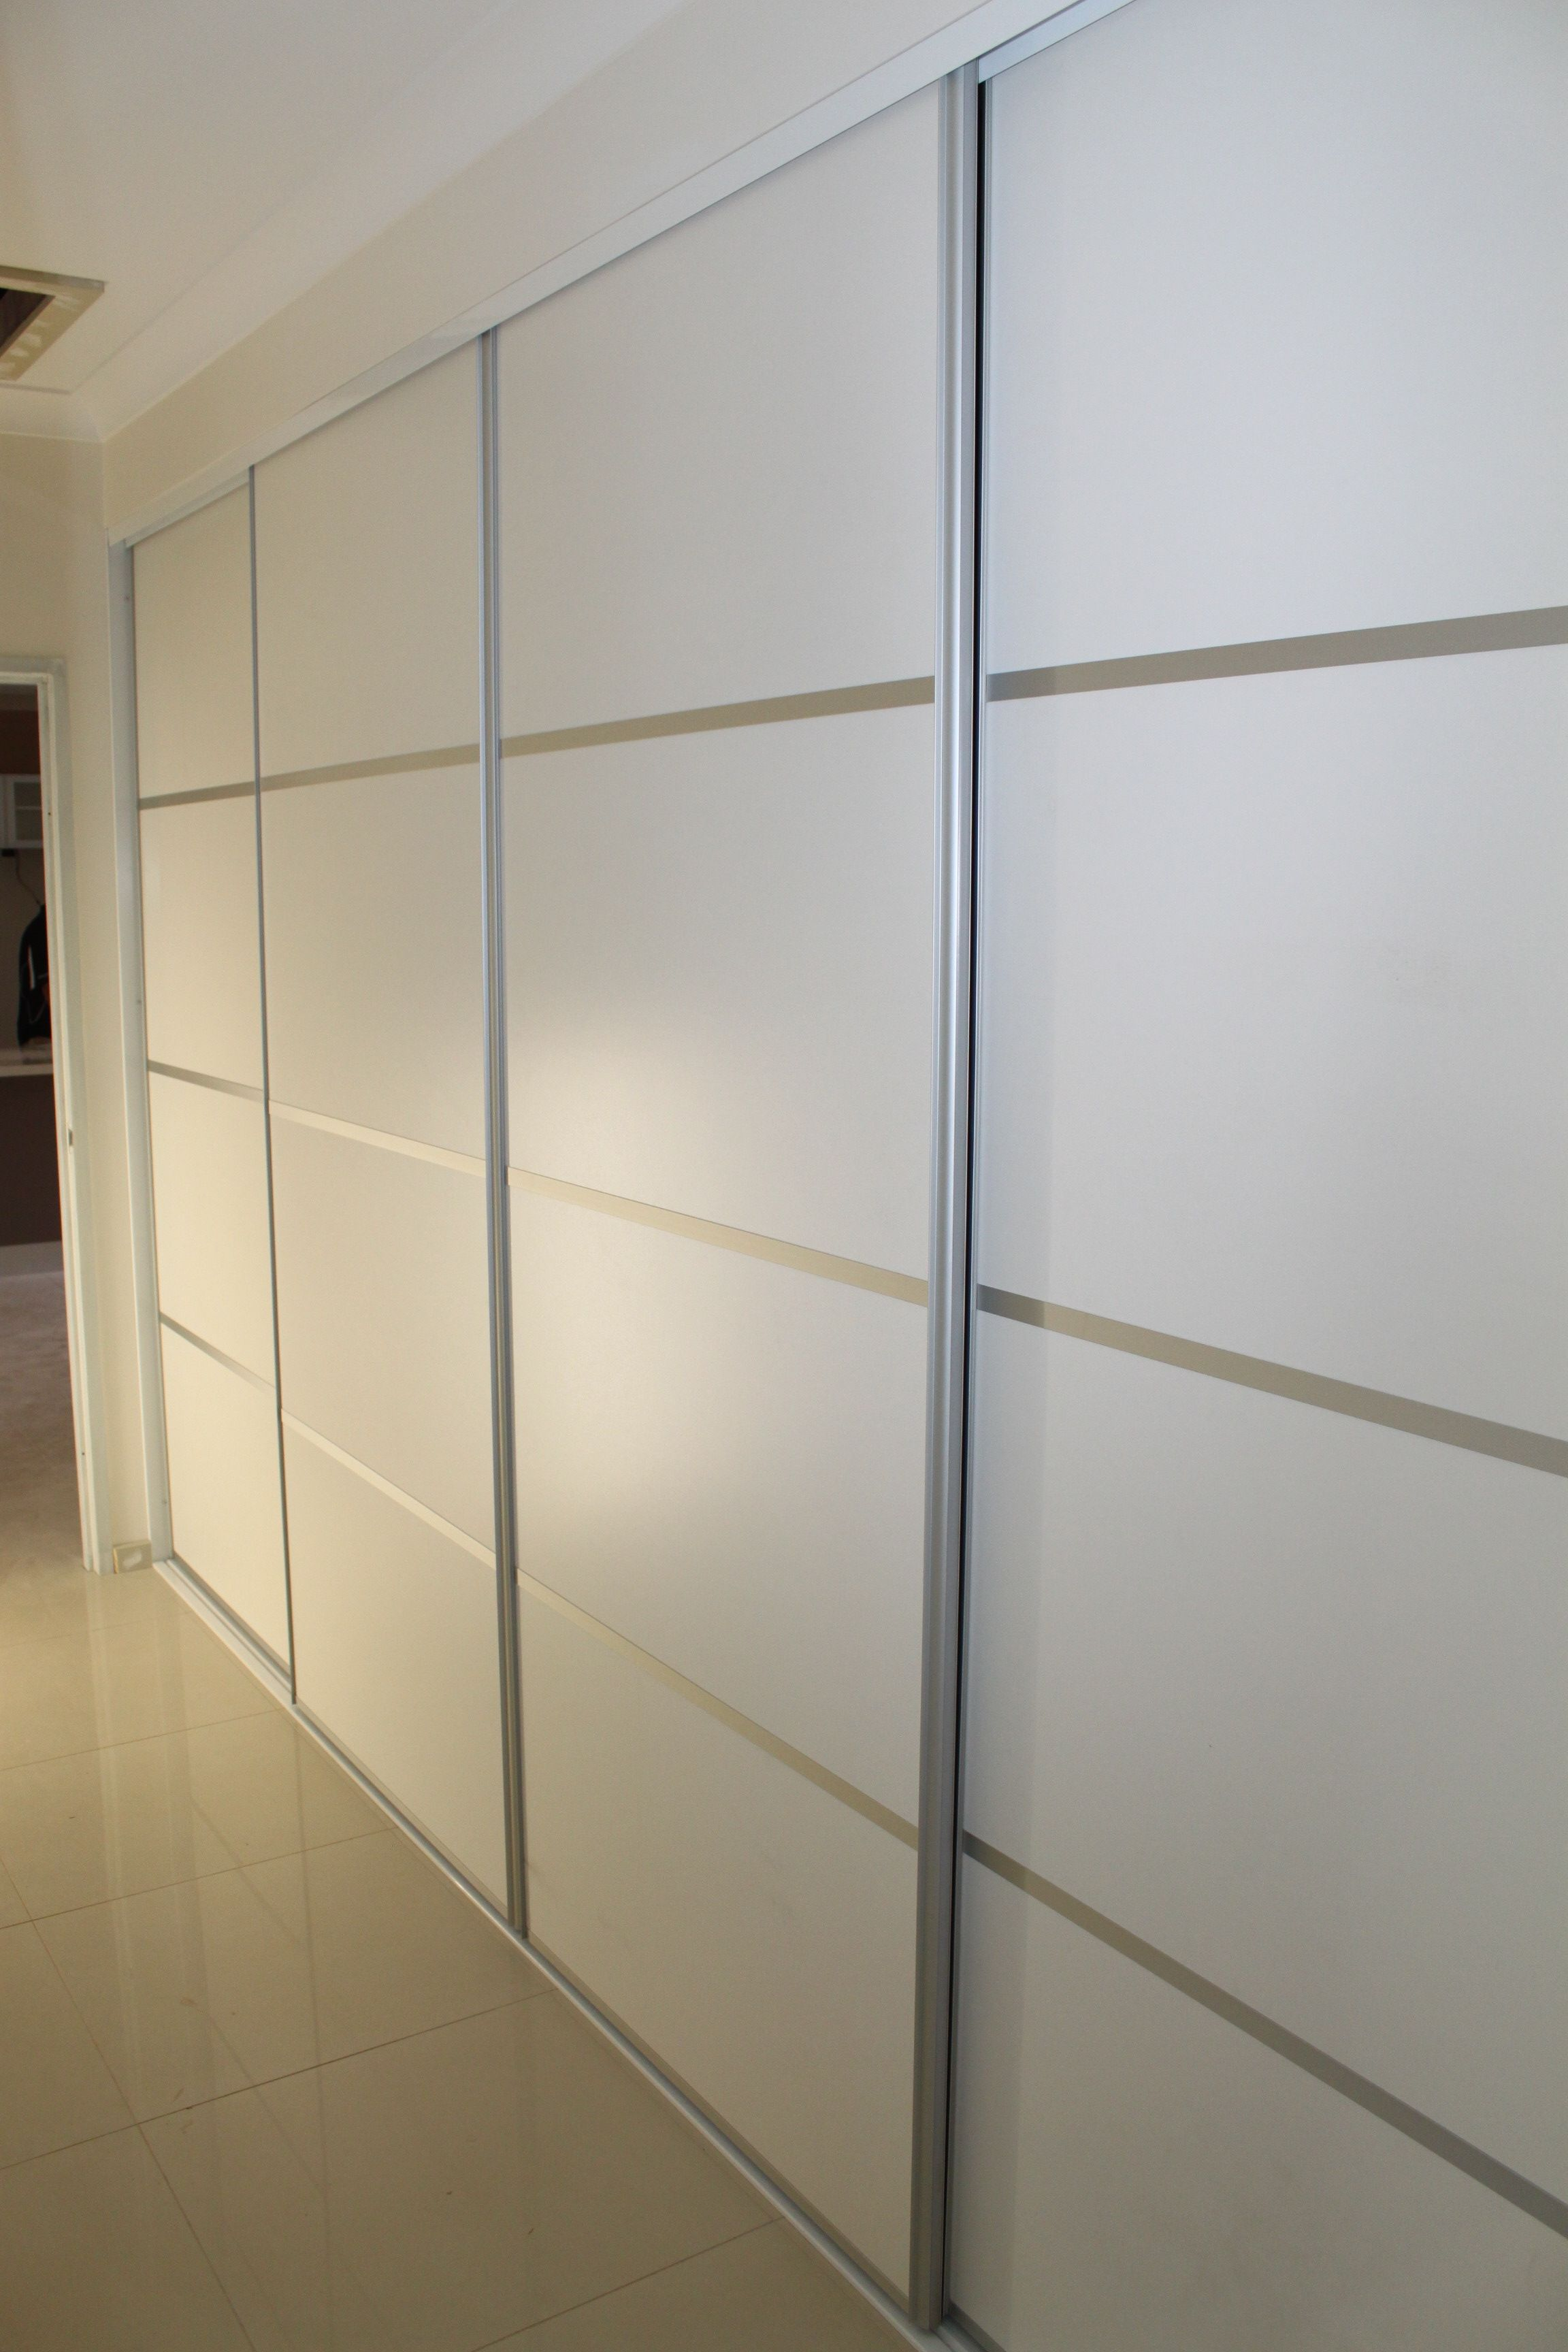 Sliding 4 panel doors for an extra wide hallway cupboard for Extra wide sliding glass doors